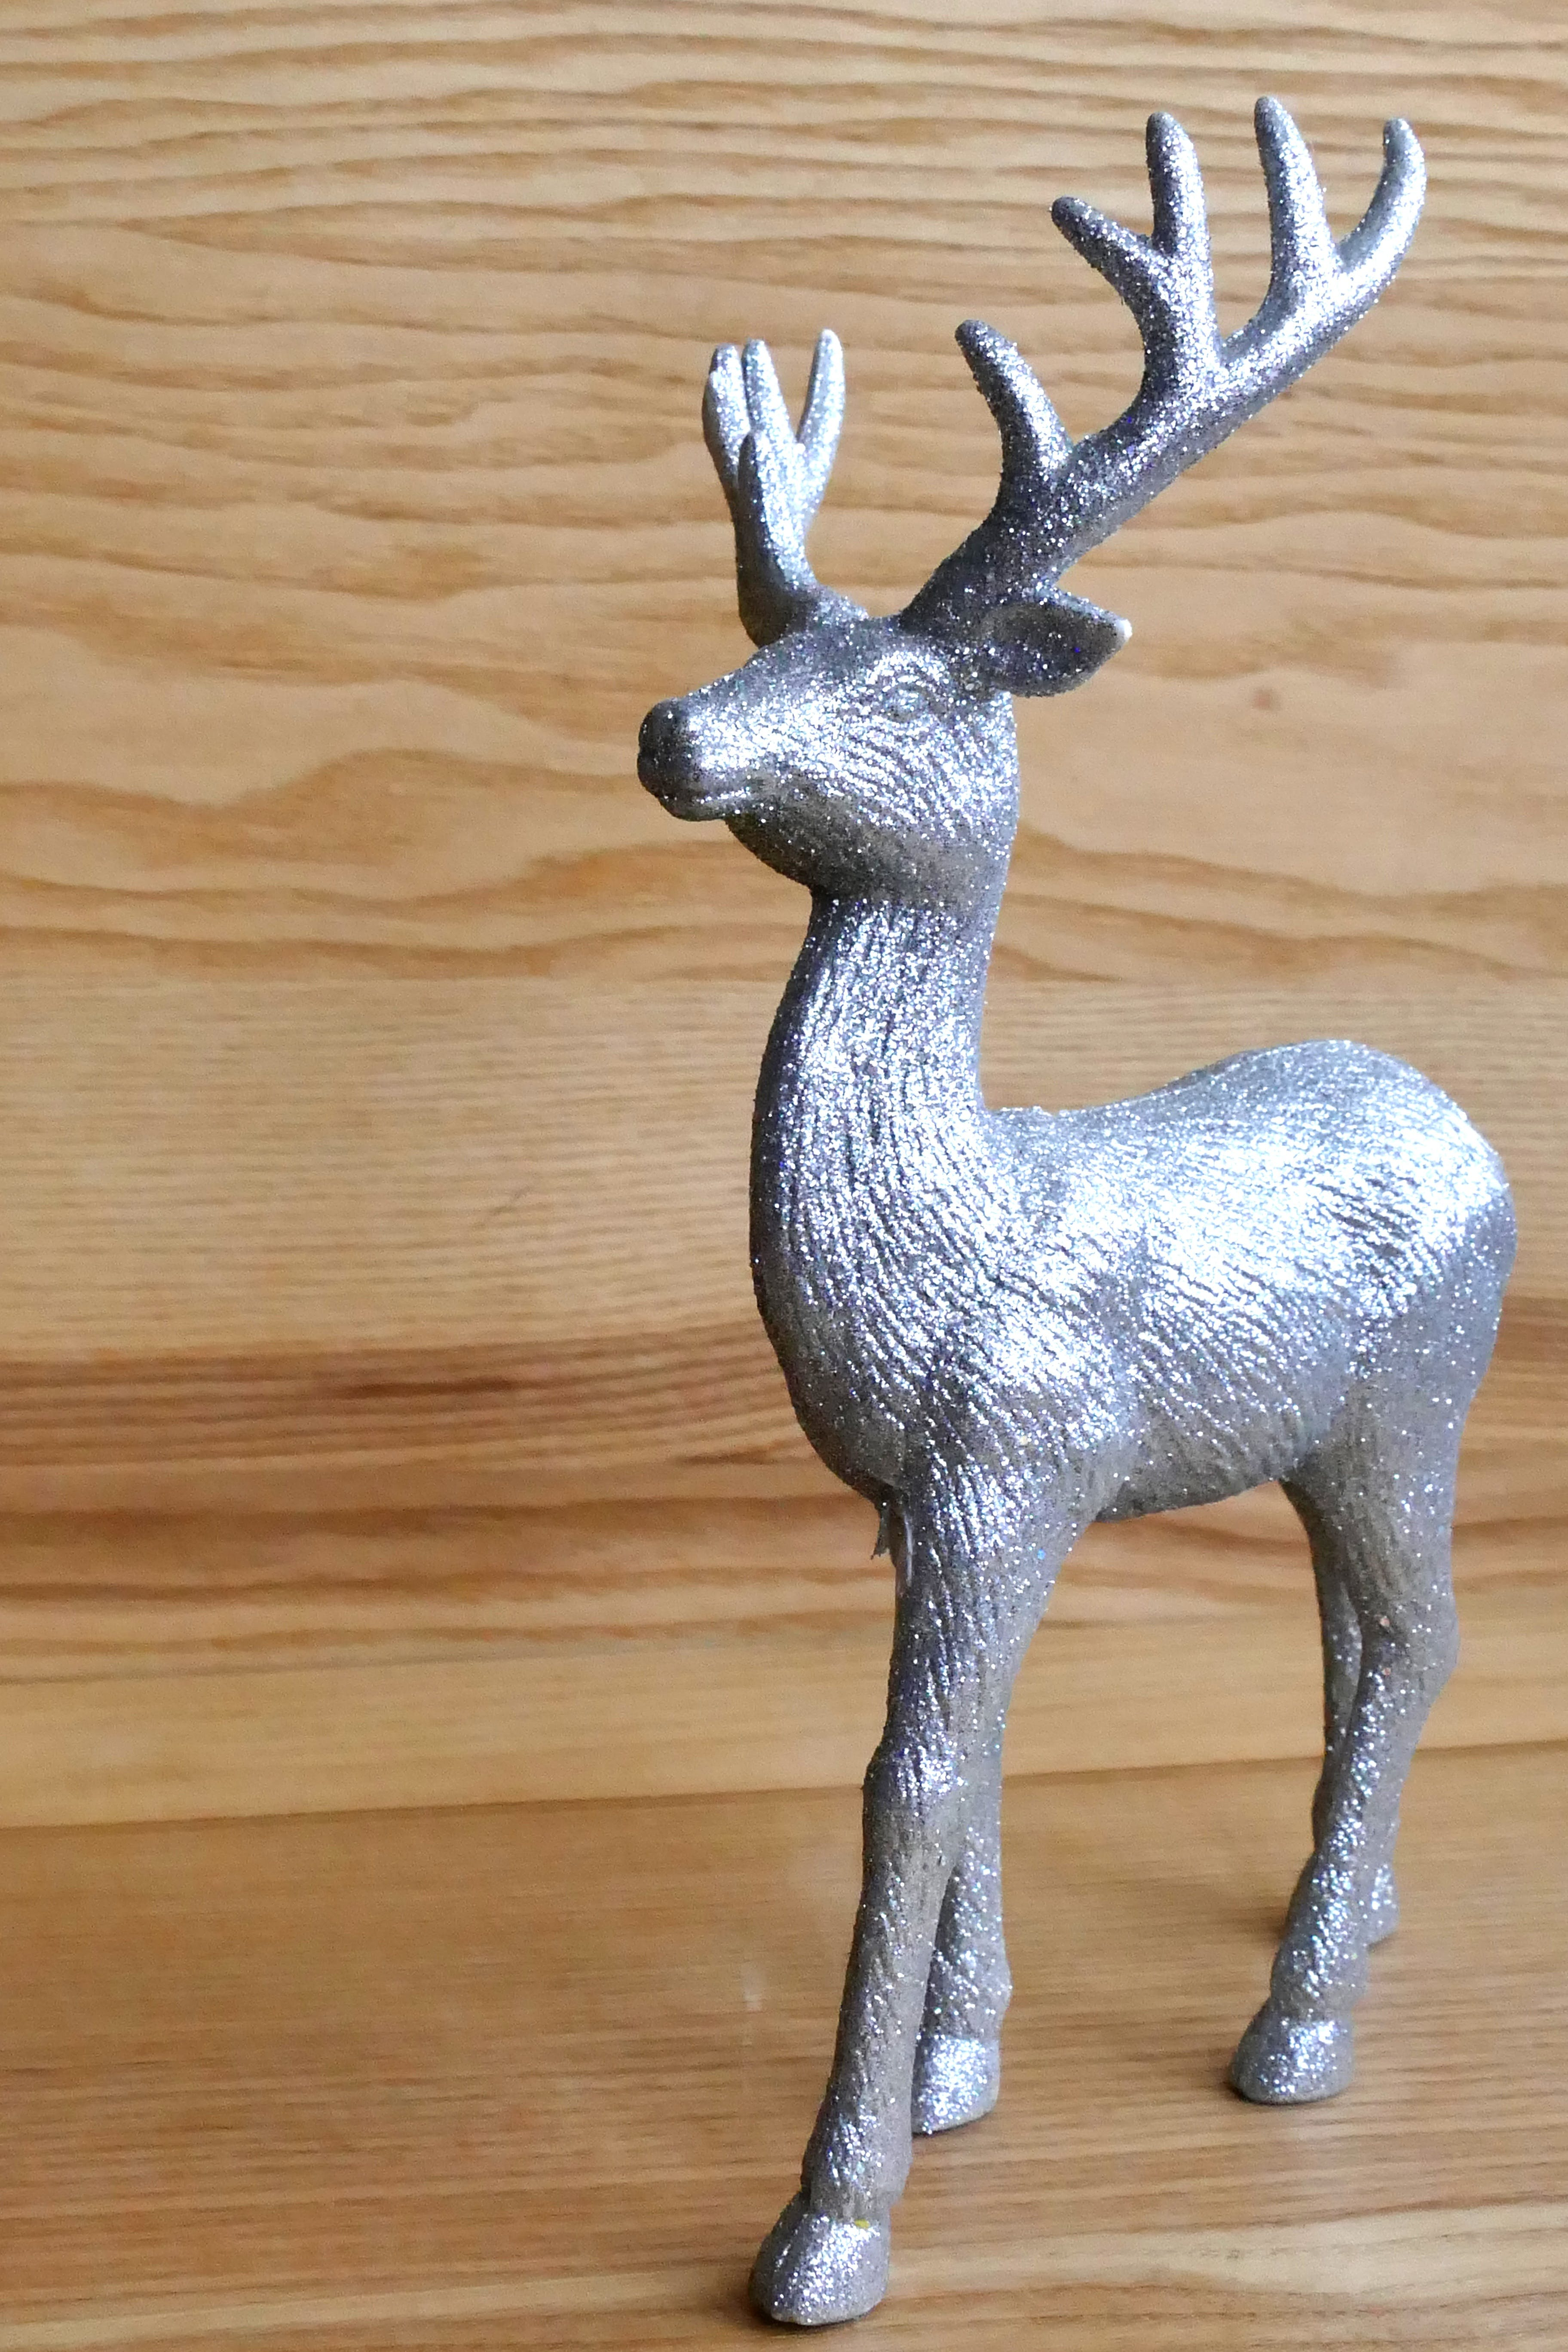 Gray Deer Figurine on Wooden Surface